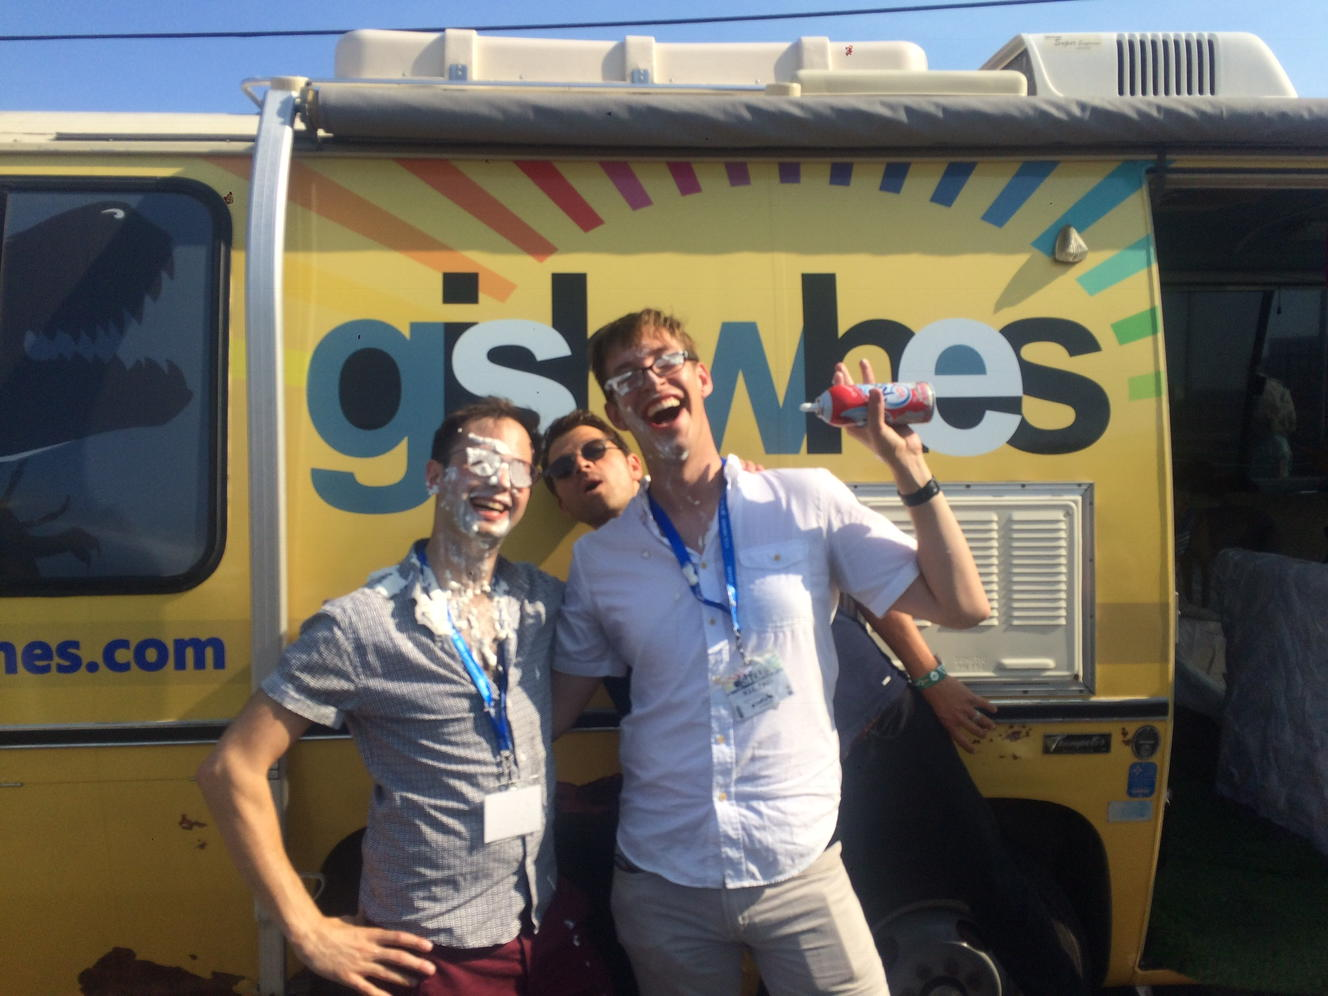 Outside the Gishbus, Random Acts volunteers show the aftermath of a whipped cream fight!